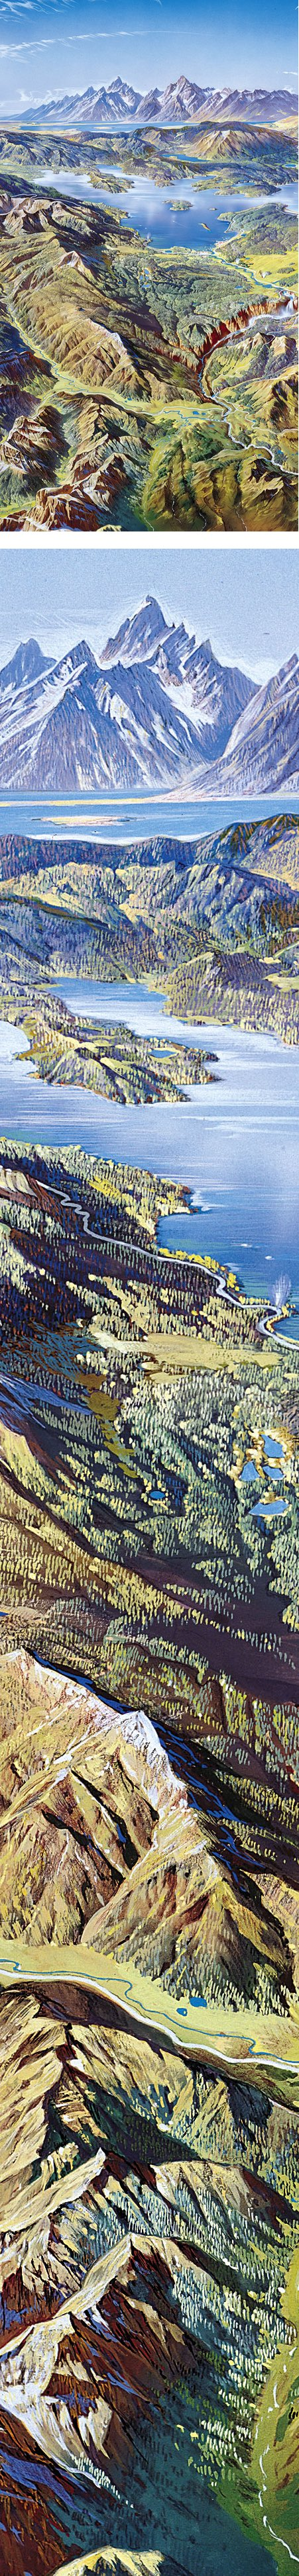 Heinrich Berann's panoramic map paintings of US national parks